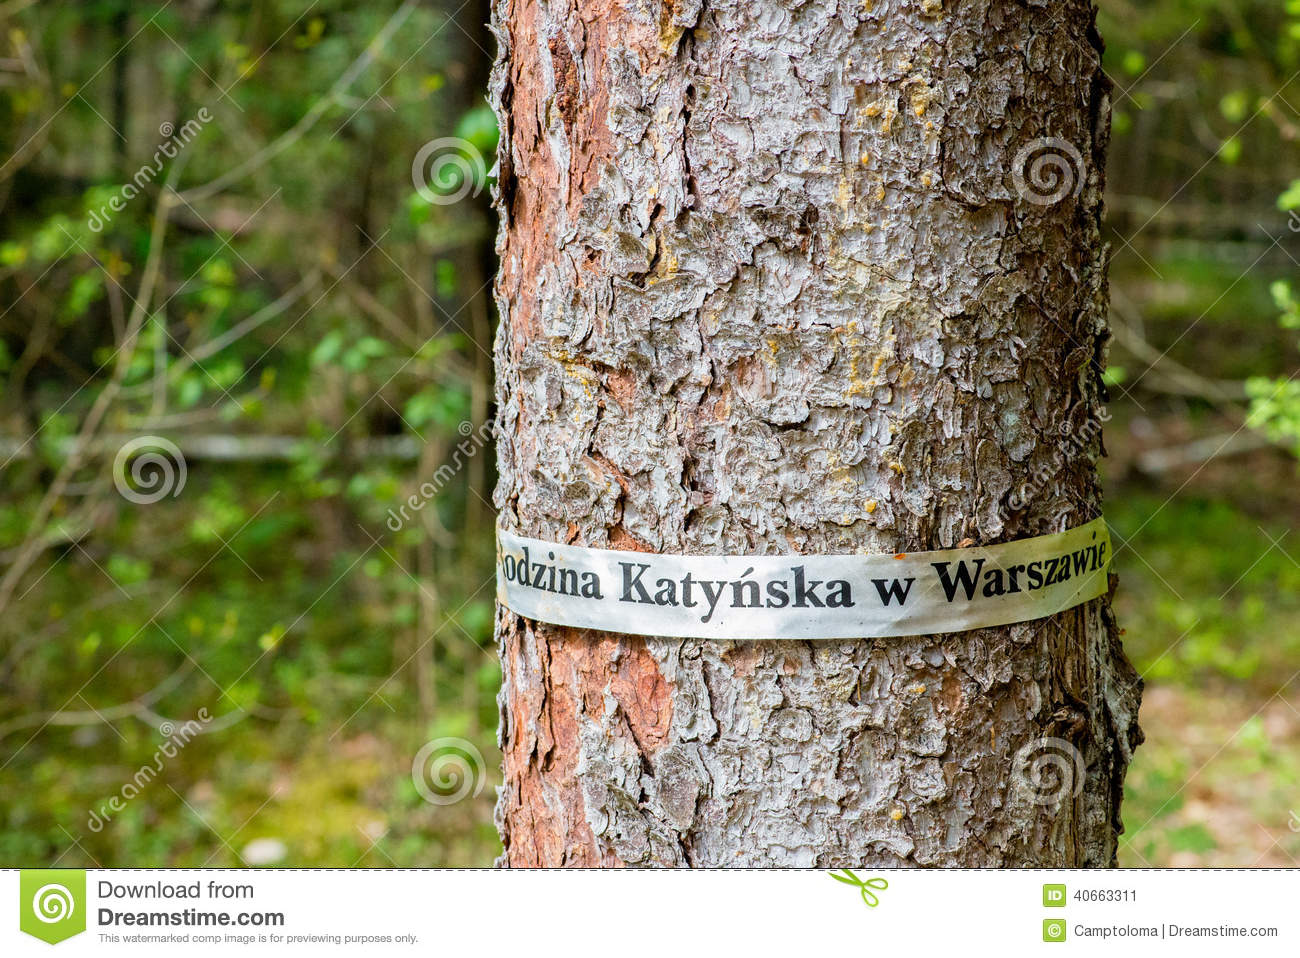 Tree In Katyn Forest (Russia, Smolensk Region) Stock Image - Image Katyn Map With Russia on lidice map, the kite runner map, berlin map, kokoda map, yaroslavl map, casablanca map, khartoum map, midway map, aftermath map, inventory map, unbroken map, europe map, danzig map, romania map, big animal map, armenian genocide map, war map,